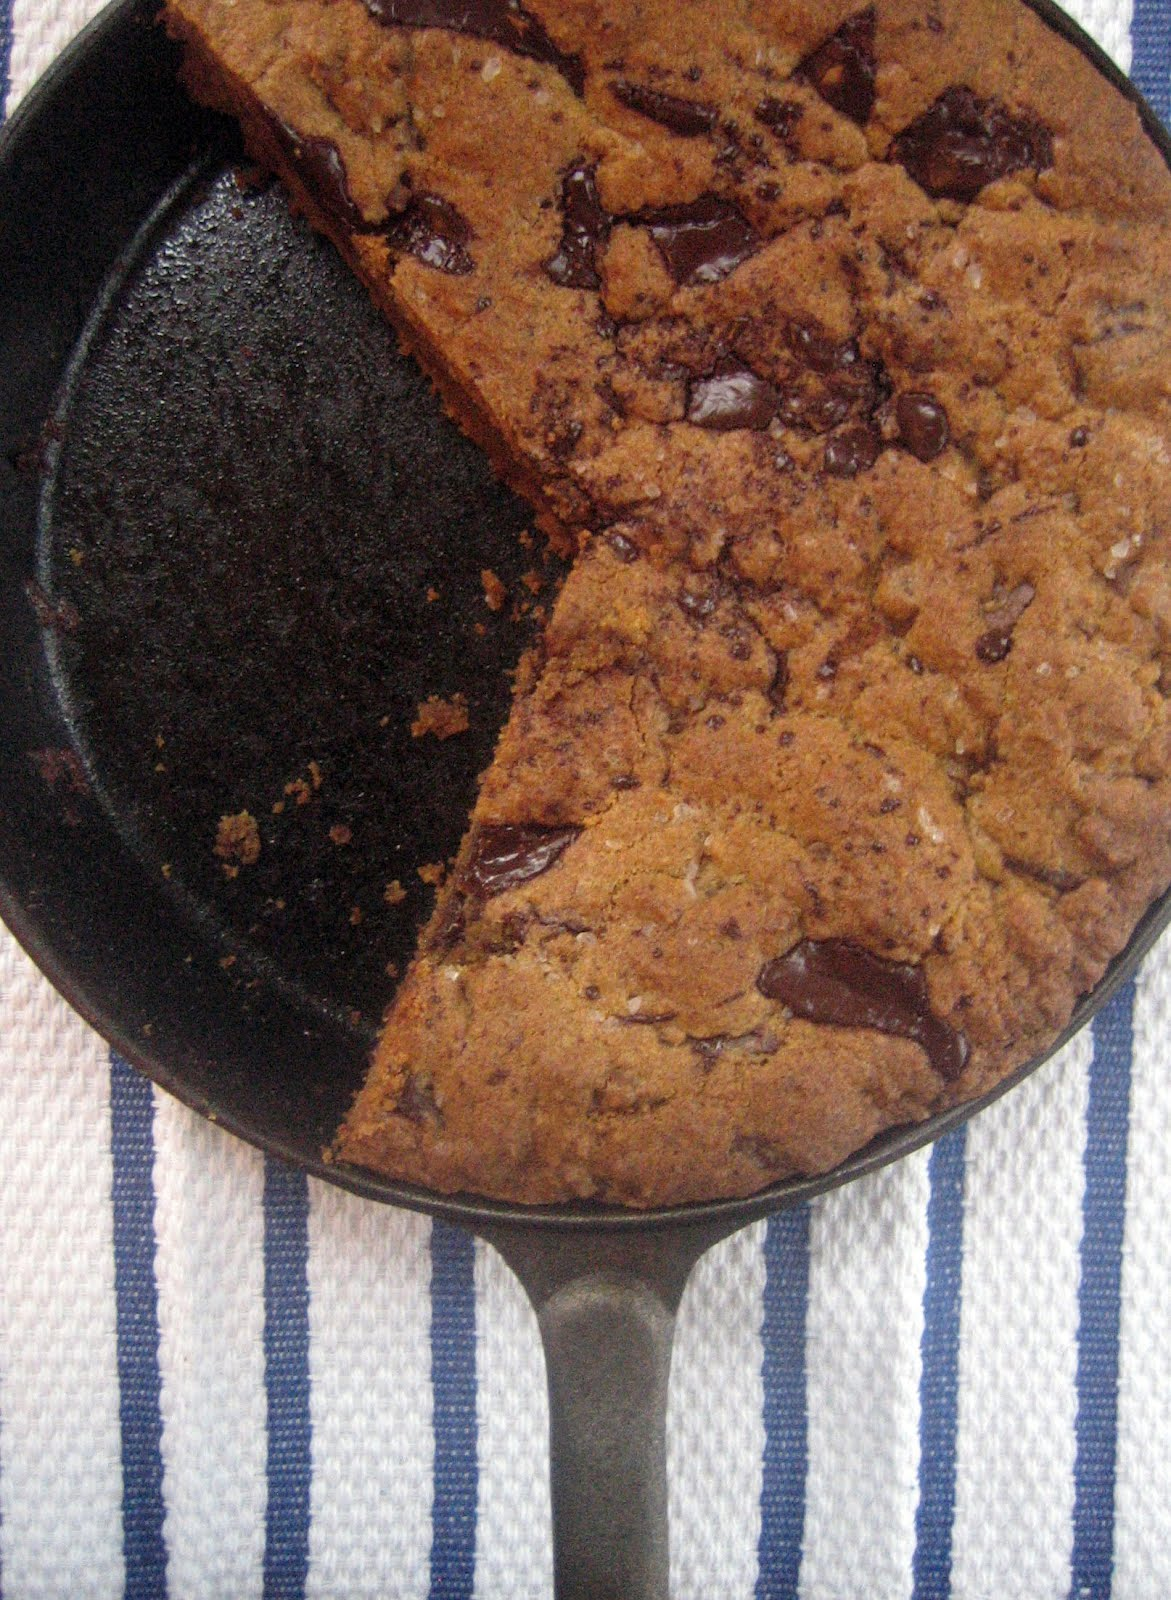 Blue Kale Road: Whole Wheat Chocolate Chip Skillet Cookies